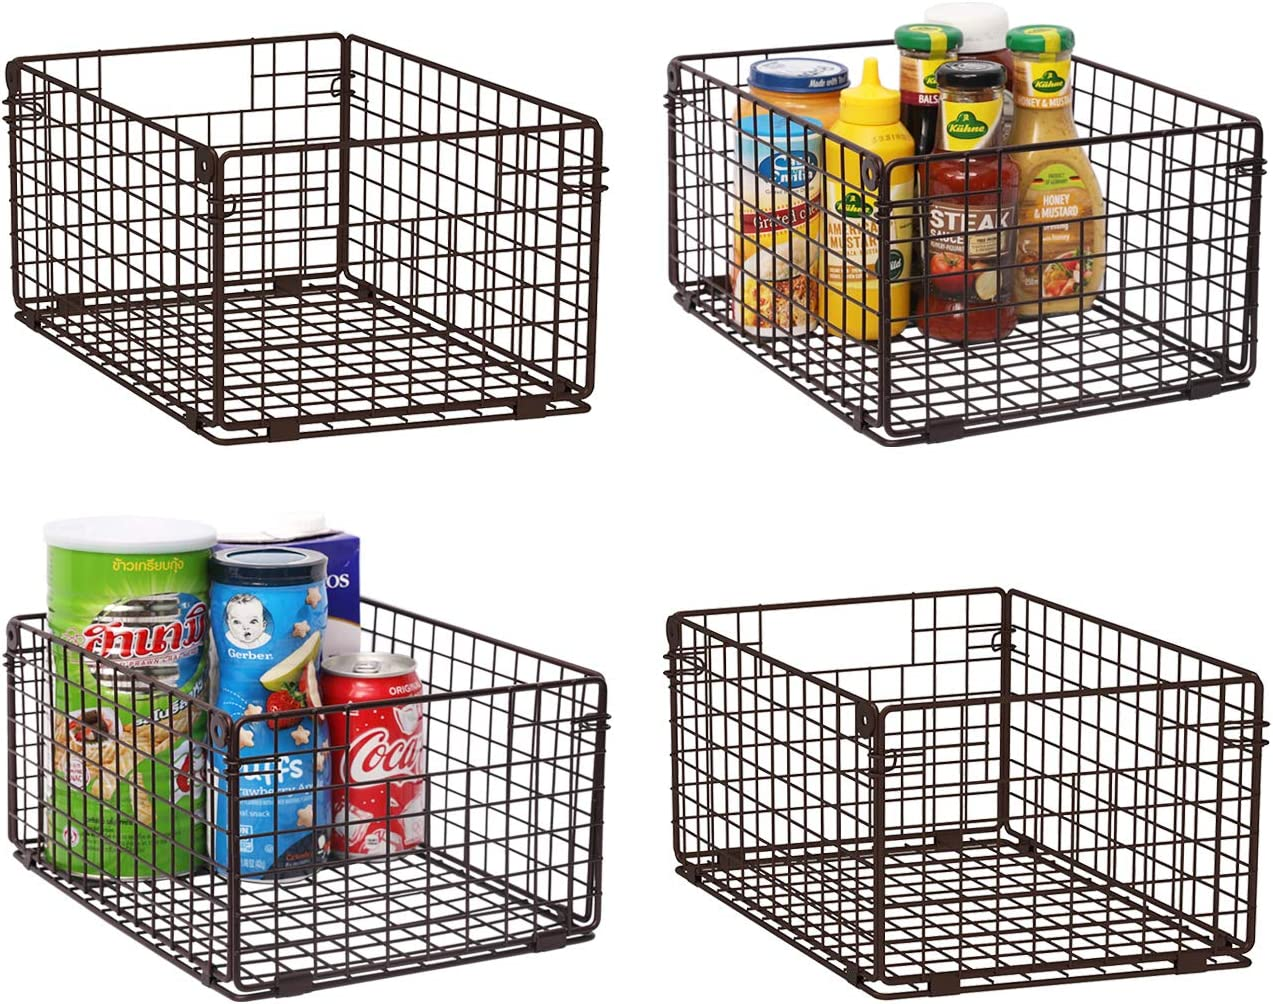 """X-cosrack Foldable Cabinet Wall Mount Metal Wire Basket Organizer with Handles - 4 Pack,12x9X6""""Farmhouse Food Storage Mesh Bin for Kitchen Pantry Bathroom Closet Garage-Patent Applied-Coffee Brown"""